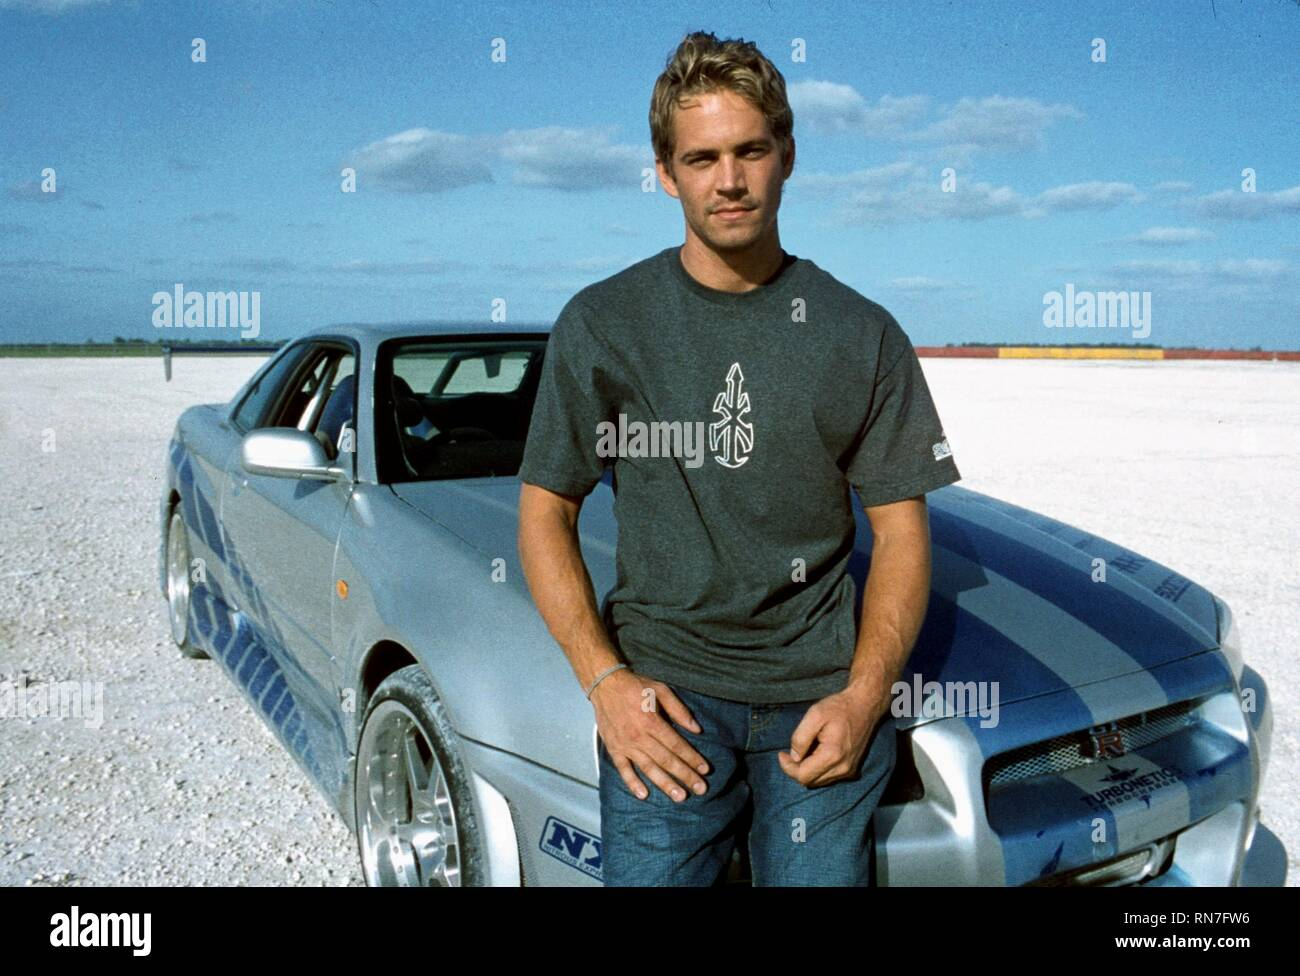 2 FAST 2 FURIOUS, PAUL WALKER, 2003 - Stock Image